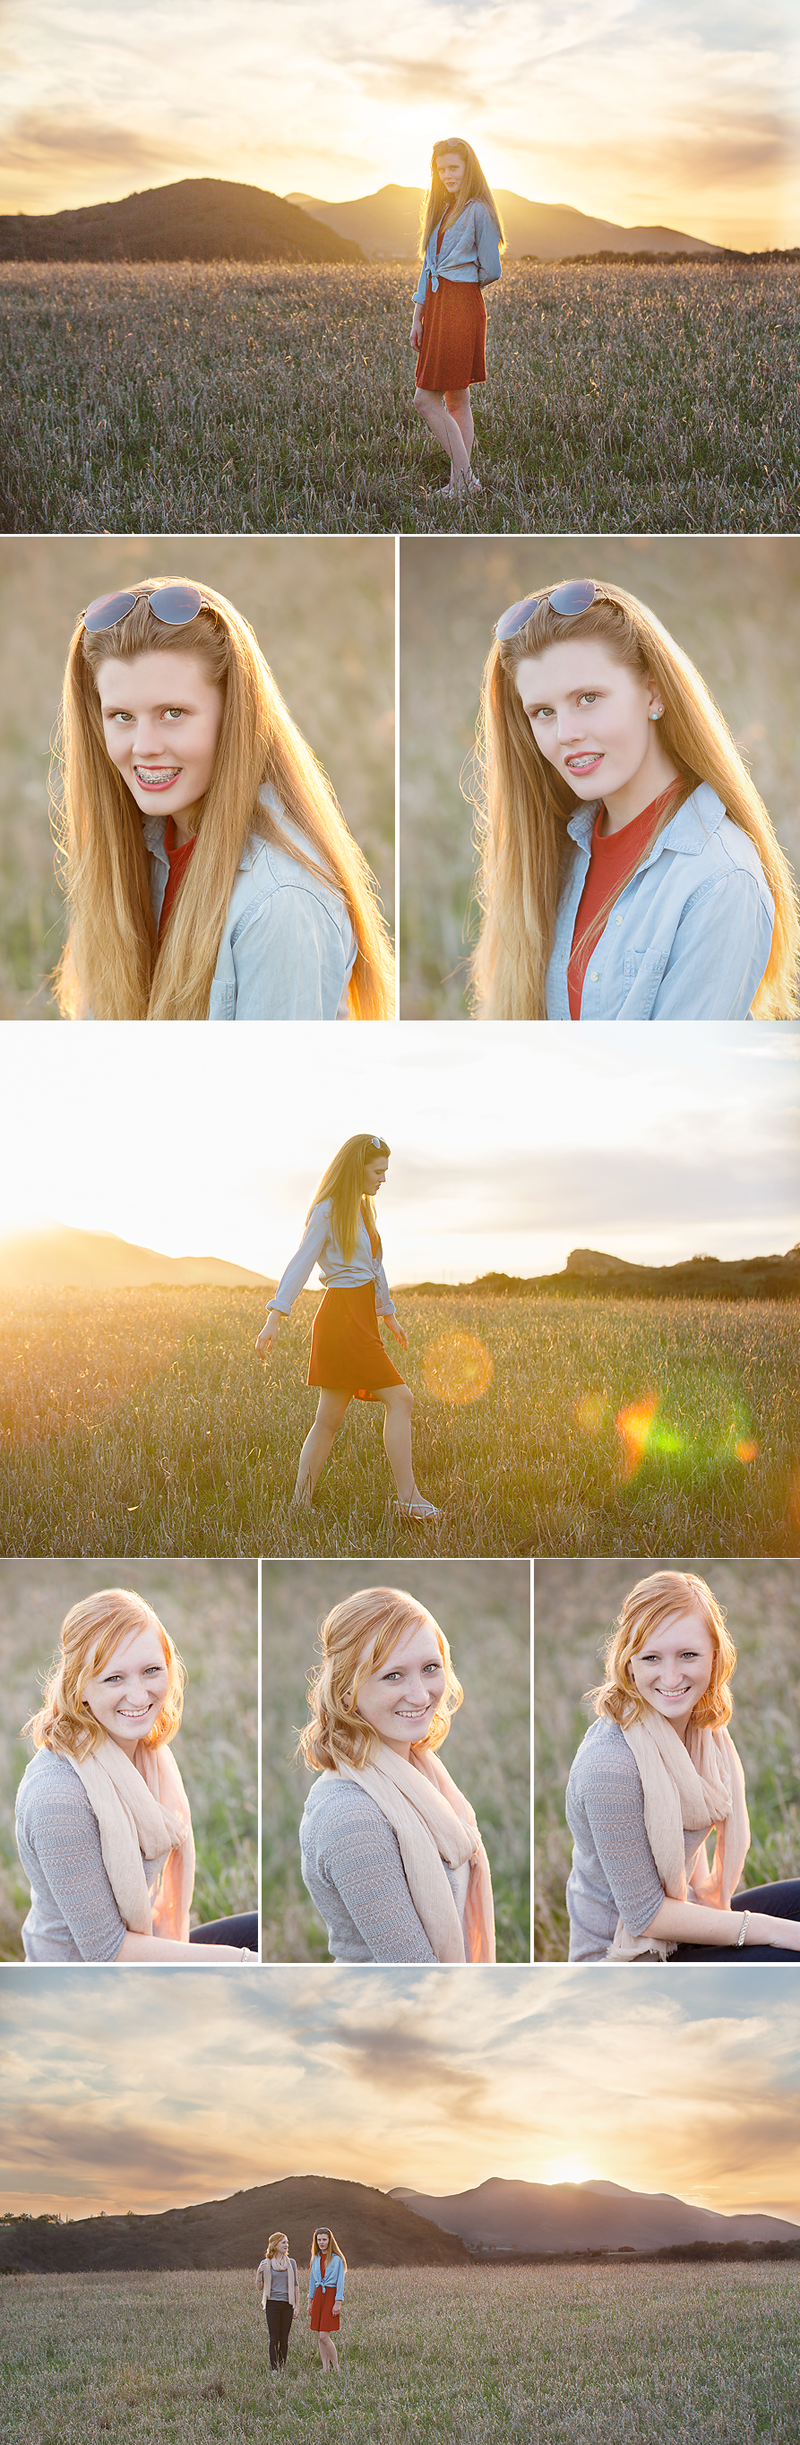 Thousand Oaks senior photographer